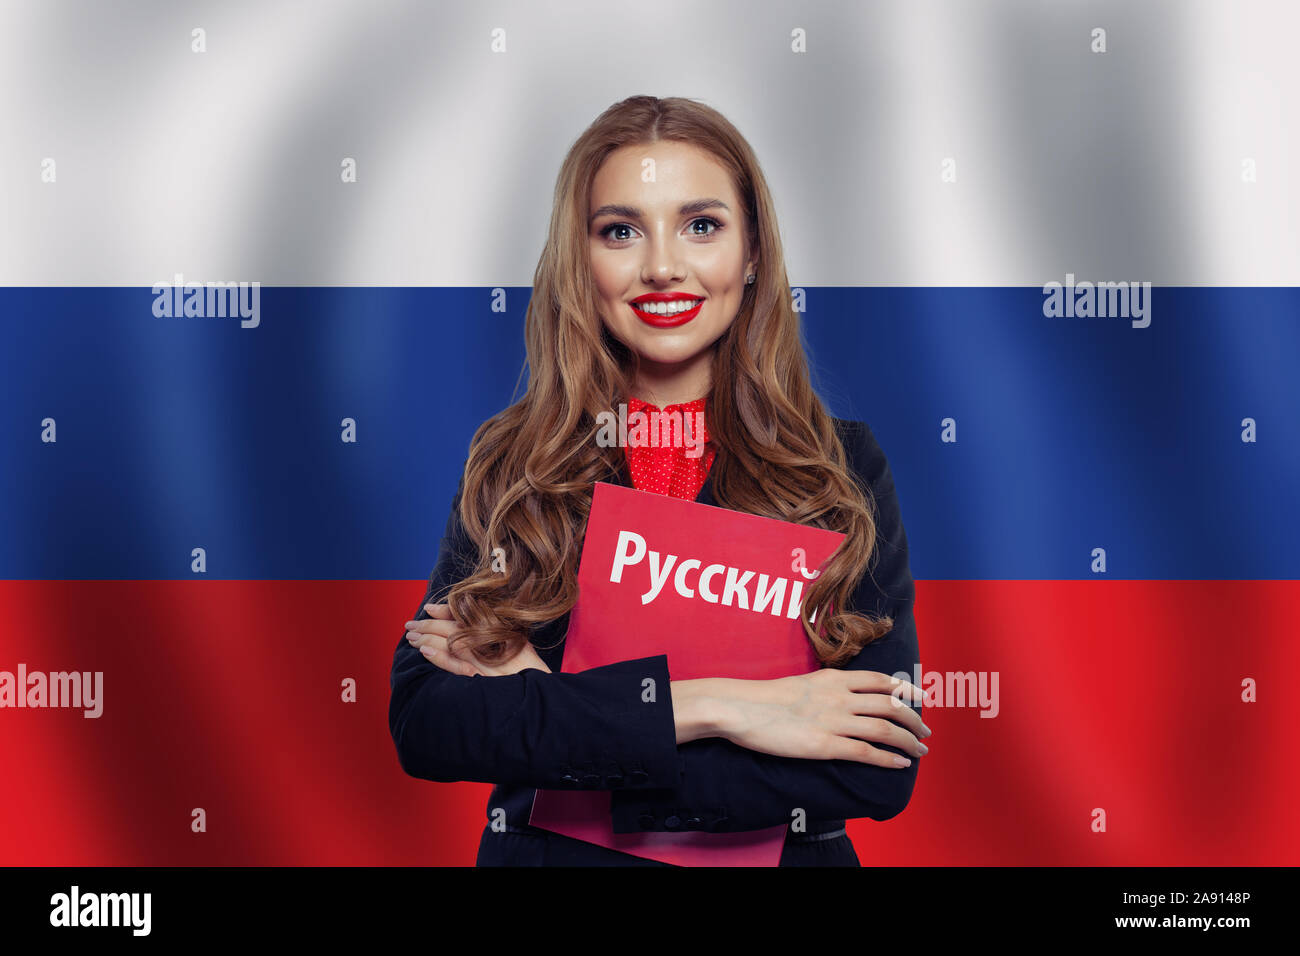 Russia Concept With Happy Woman Student With Red Book On The Russian Federation Flag Background Learn Russian Language Book With Inscription Russian Stock Photo Alamy